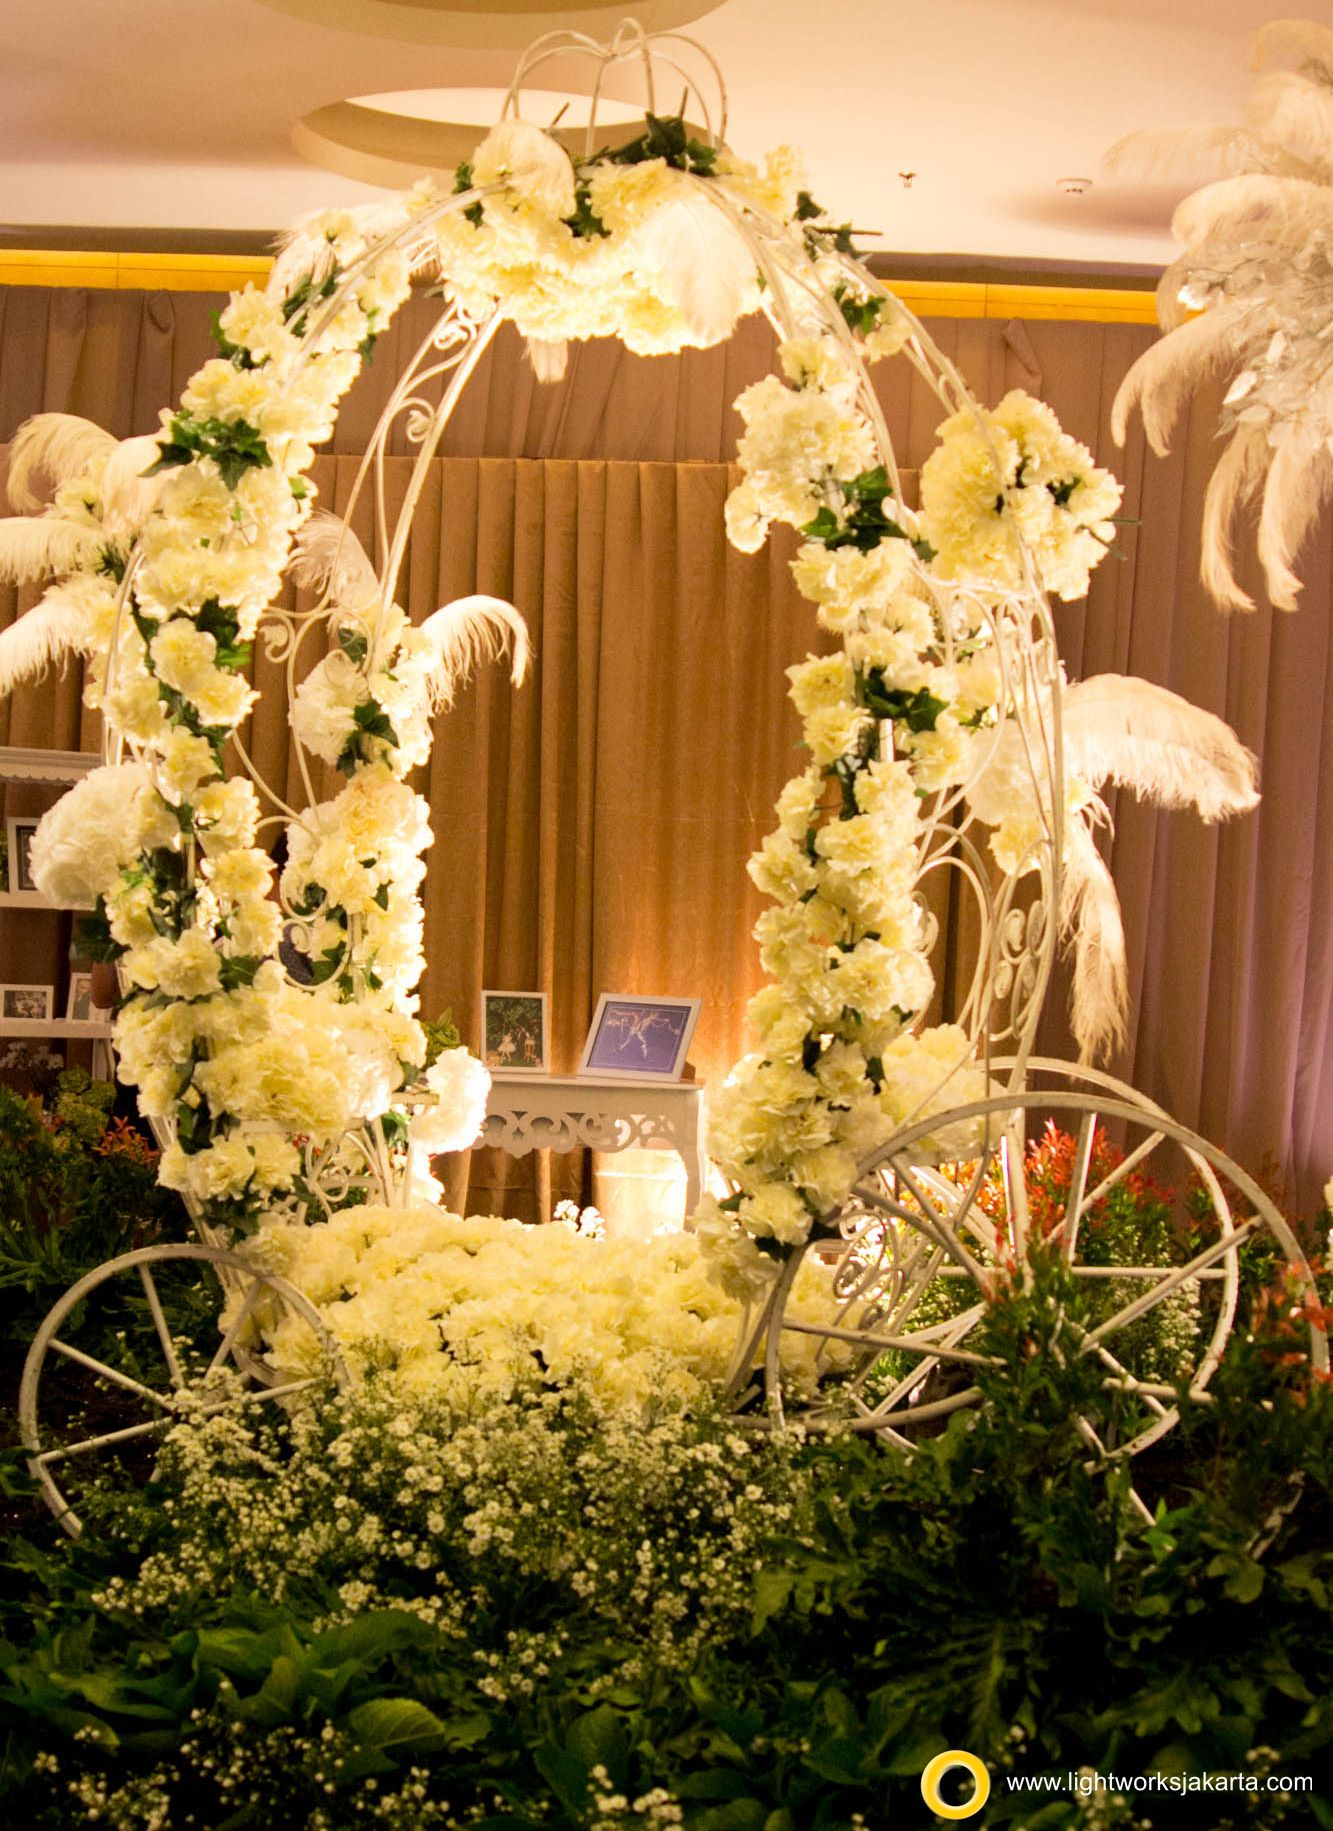 Oliver and stellas wedding reception venue at pullman central oliver and stellas wedding reception venue at pullman central park hotel jakarta organized junglespirit Choice Image